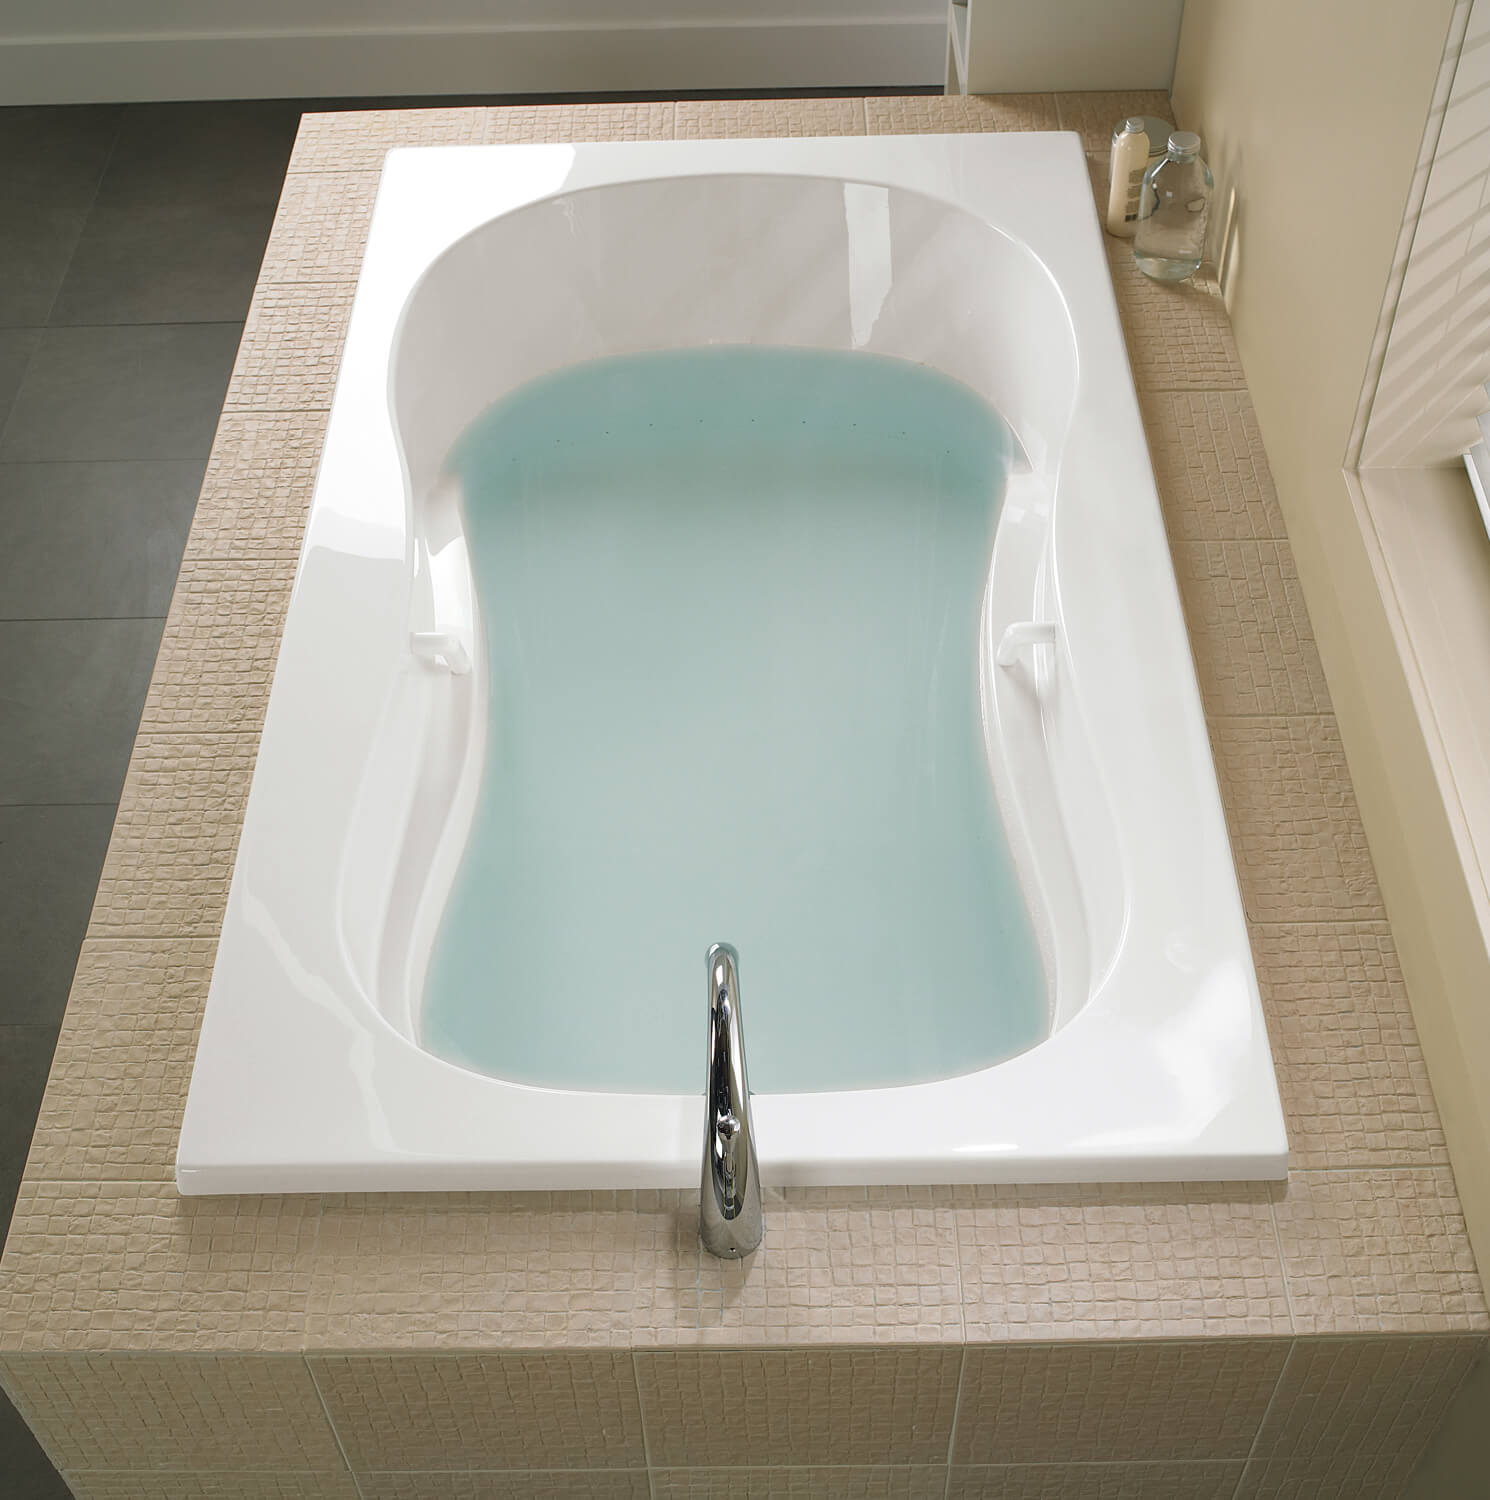 Bainultra Azur 642 collection alcove drop-in air jet bathtub for your modern bathroom